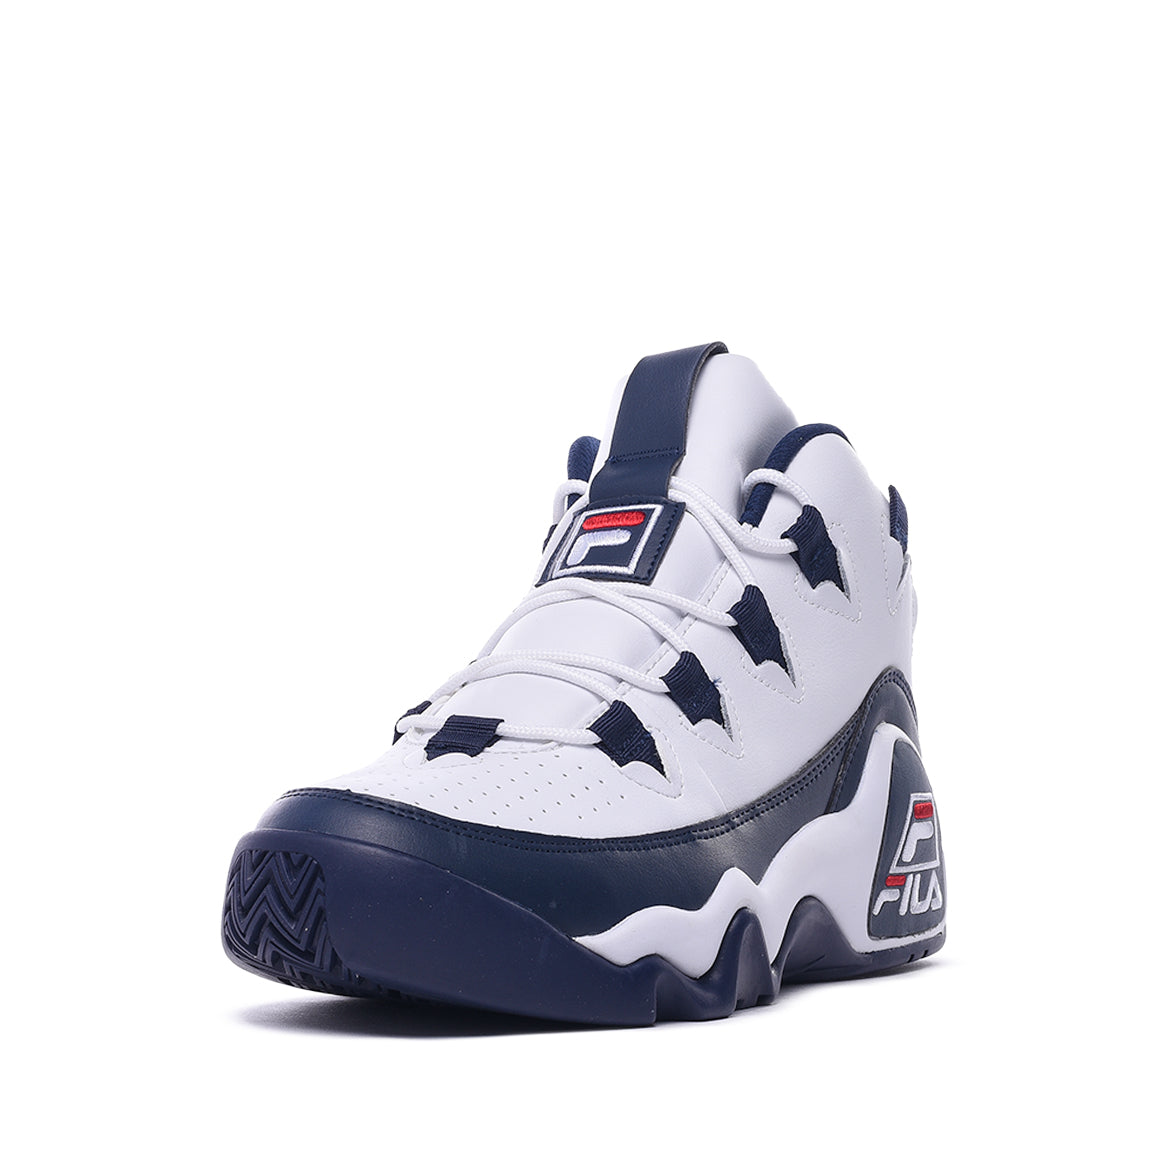 GRANT HILL 1 - WHITE / NAVY / RED